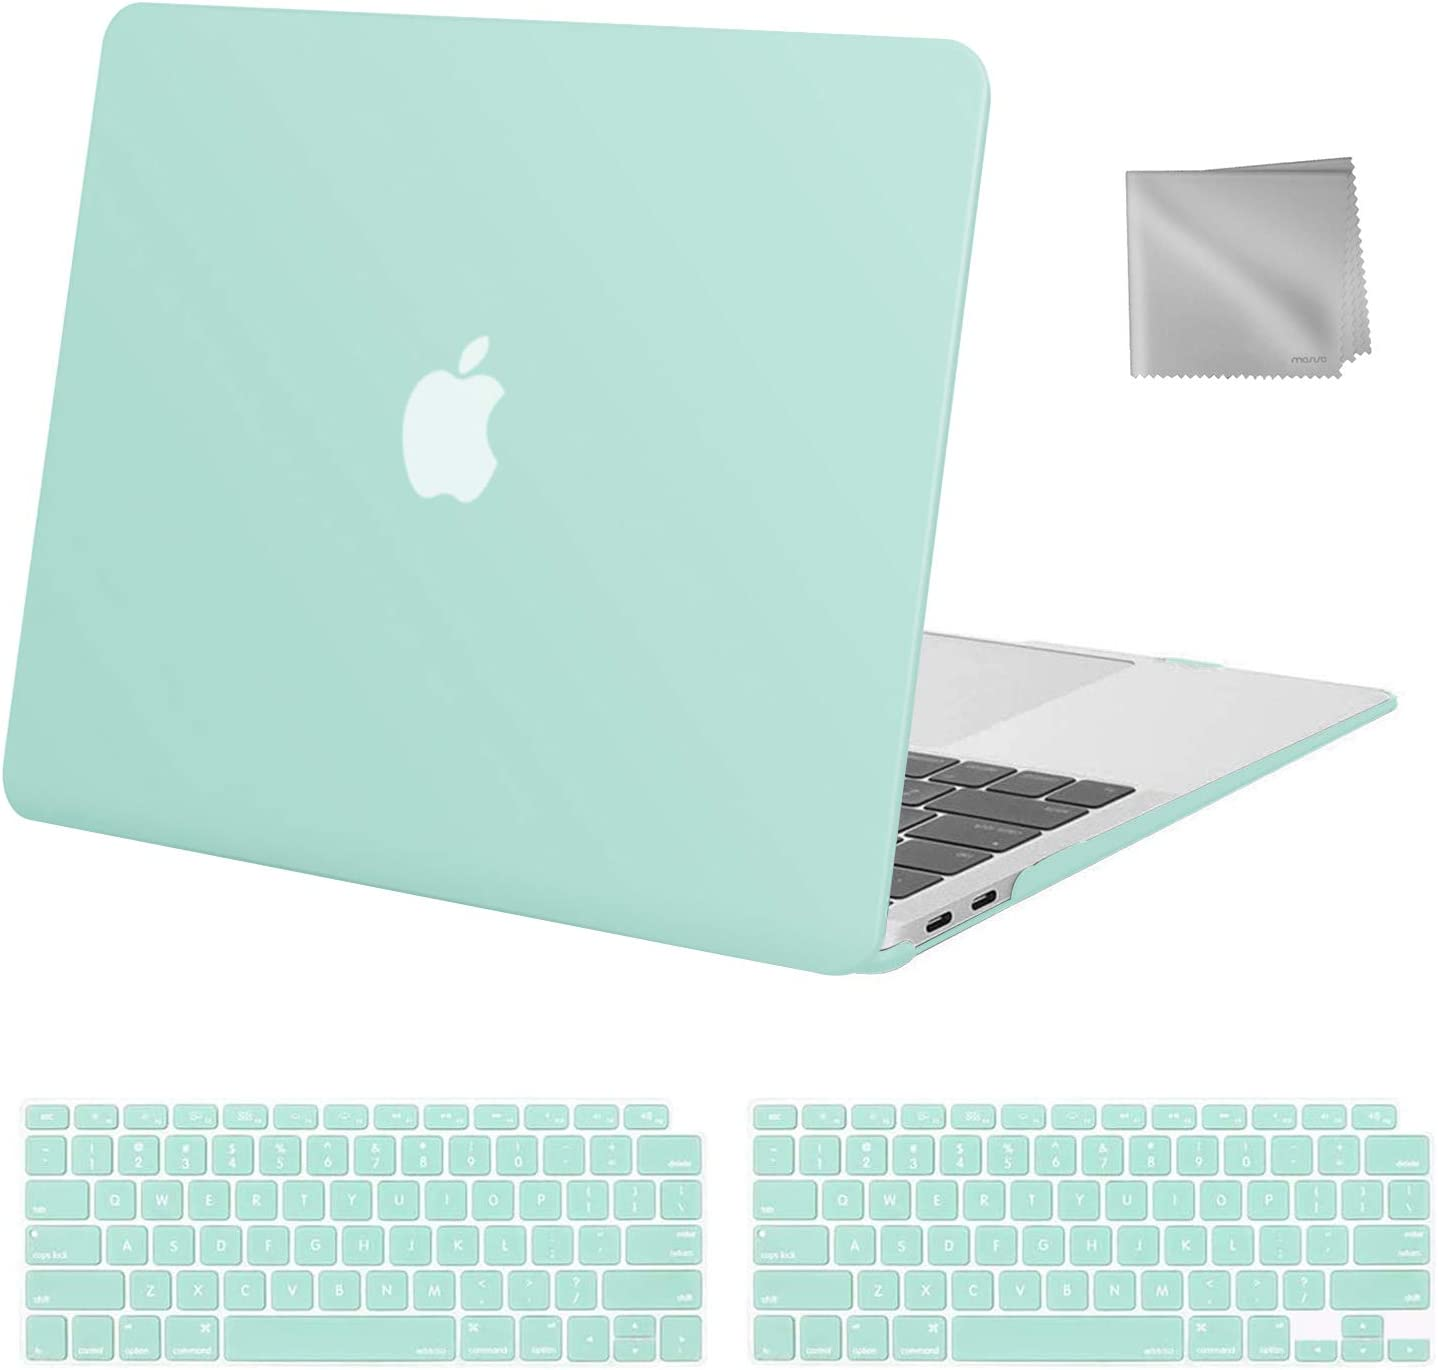 Funda rigida, cubierta teclado MacBook Air 13 inch 2020 mint